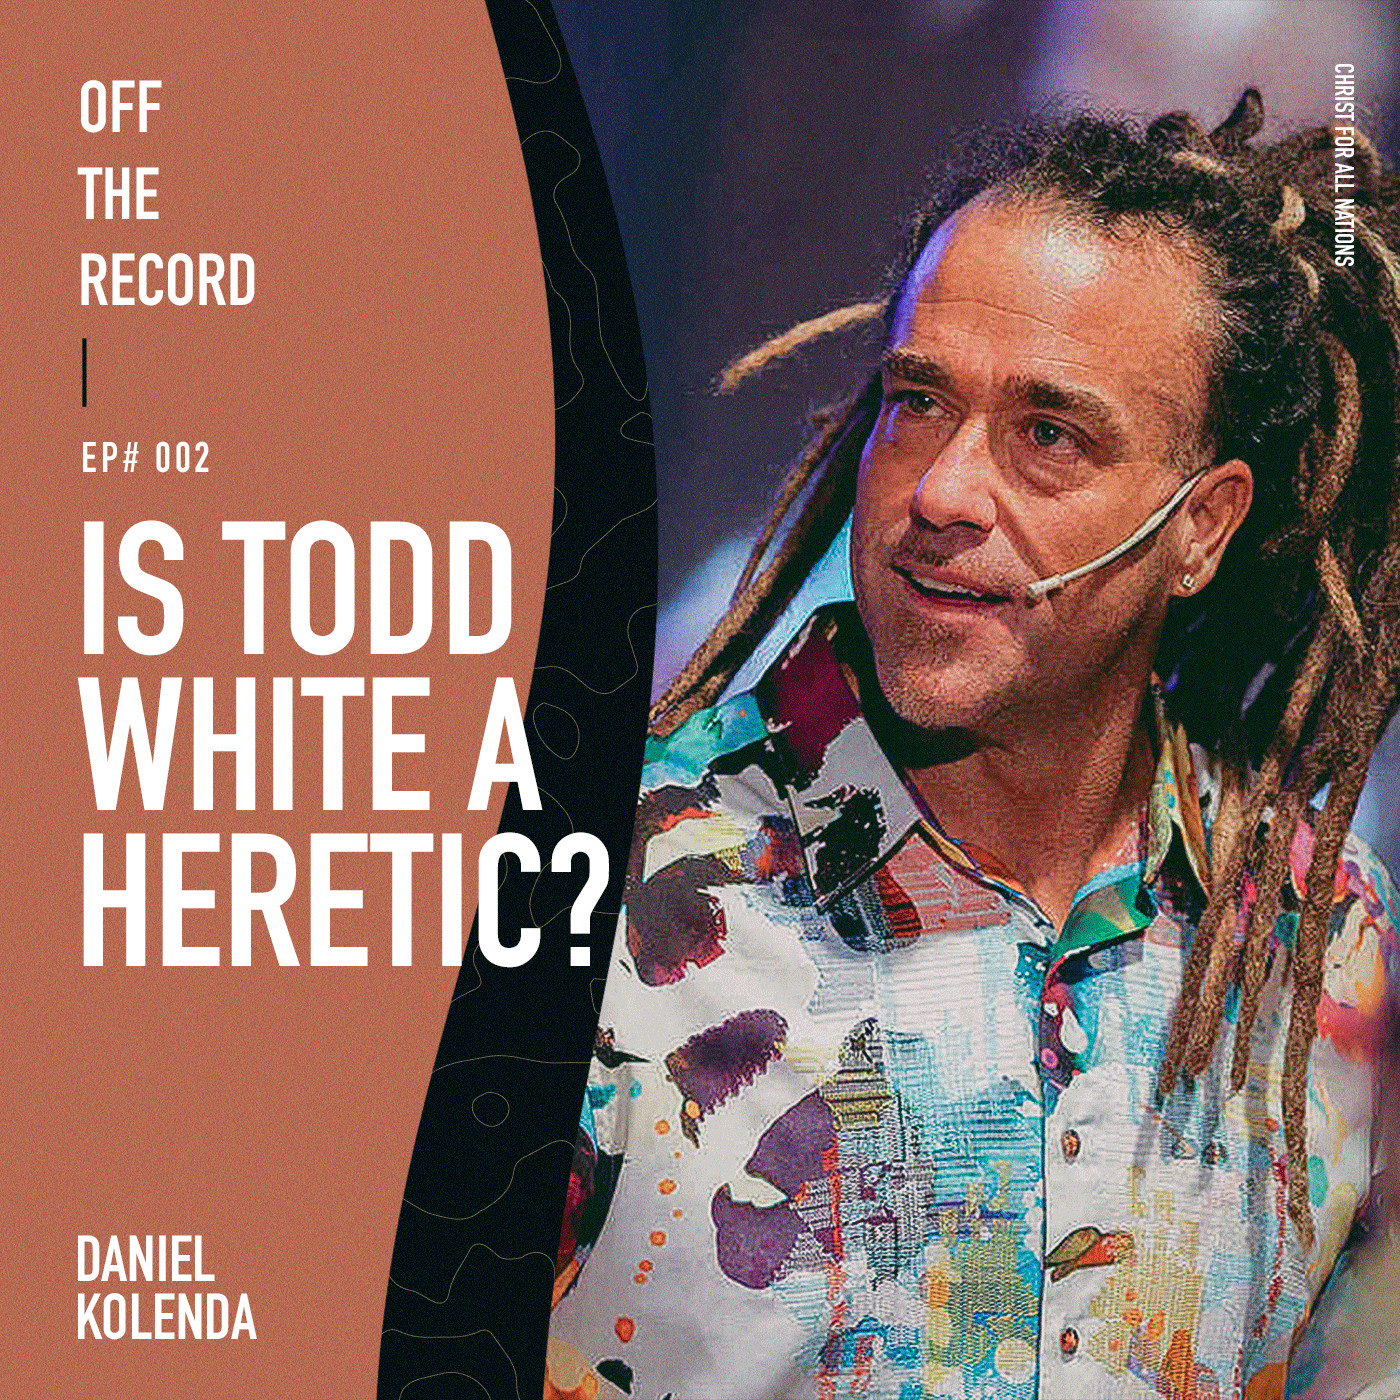 Episode# 002 - Is Todd White a Heretic? - Interview with Daniel Kolenda (Part 1)